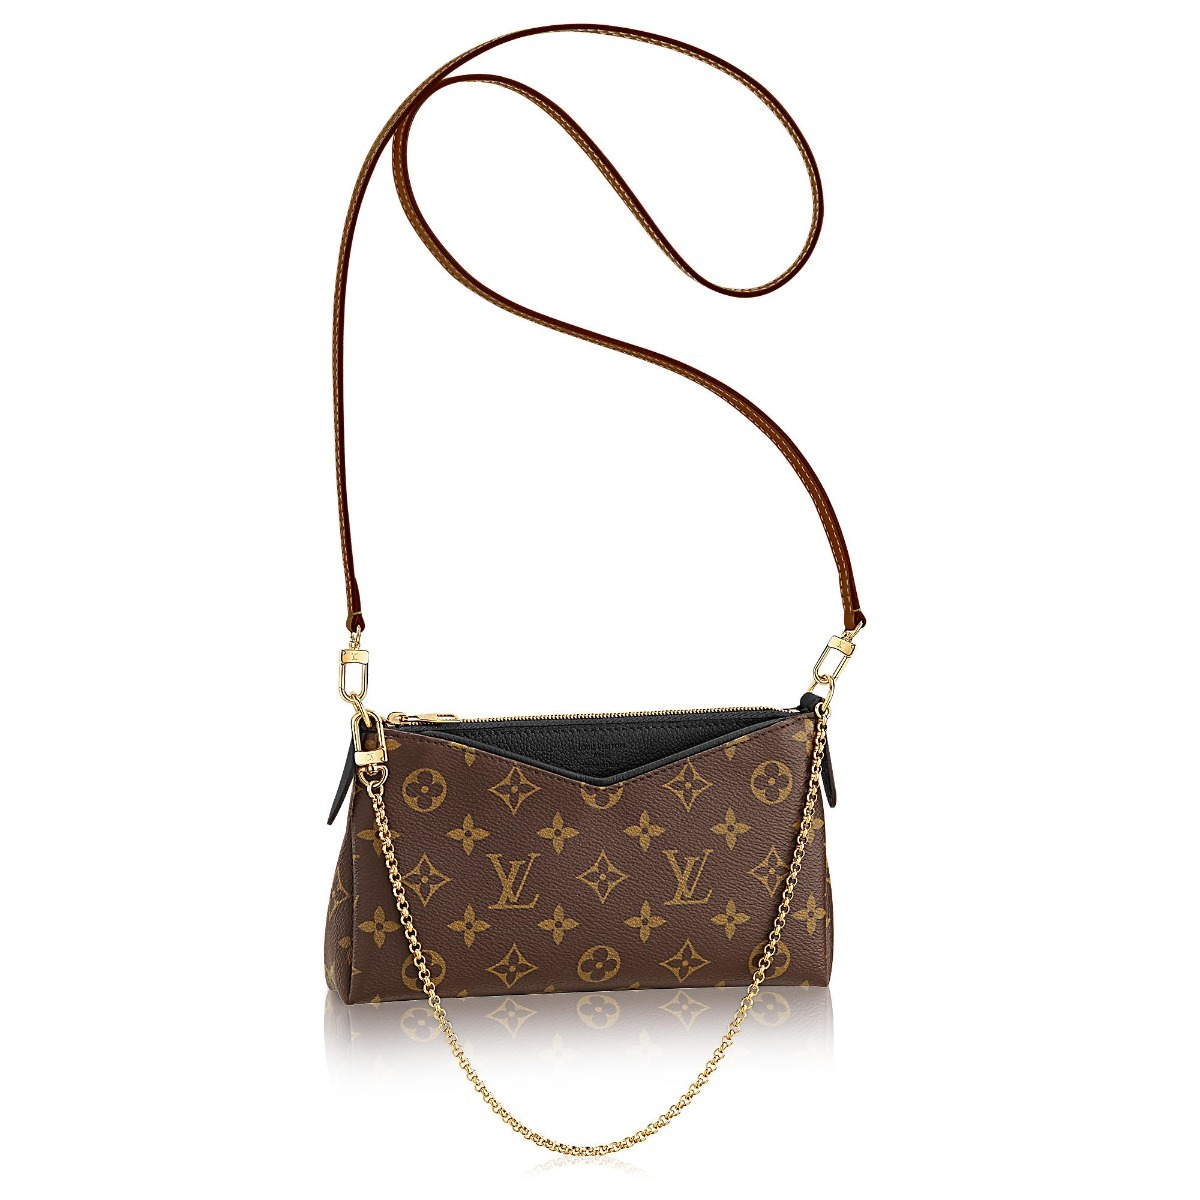 ed58a49372f bolsa louis vuitton pallas mini feminina monogram importada. Carregando  zoom.